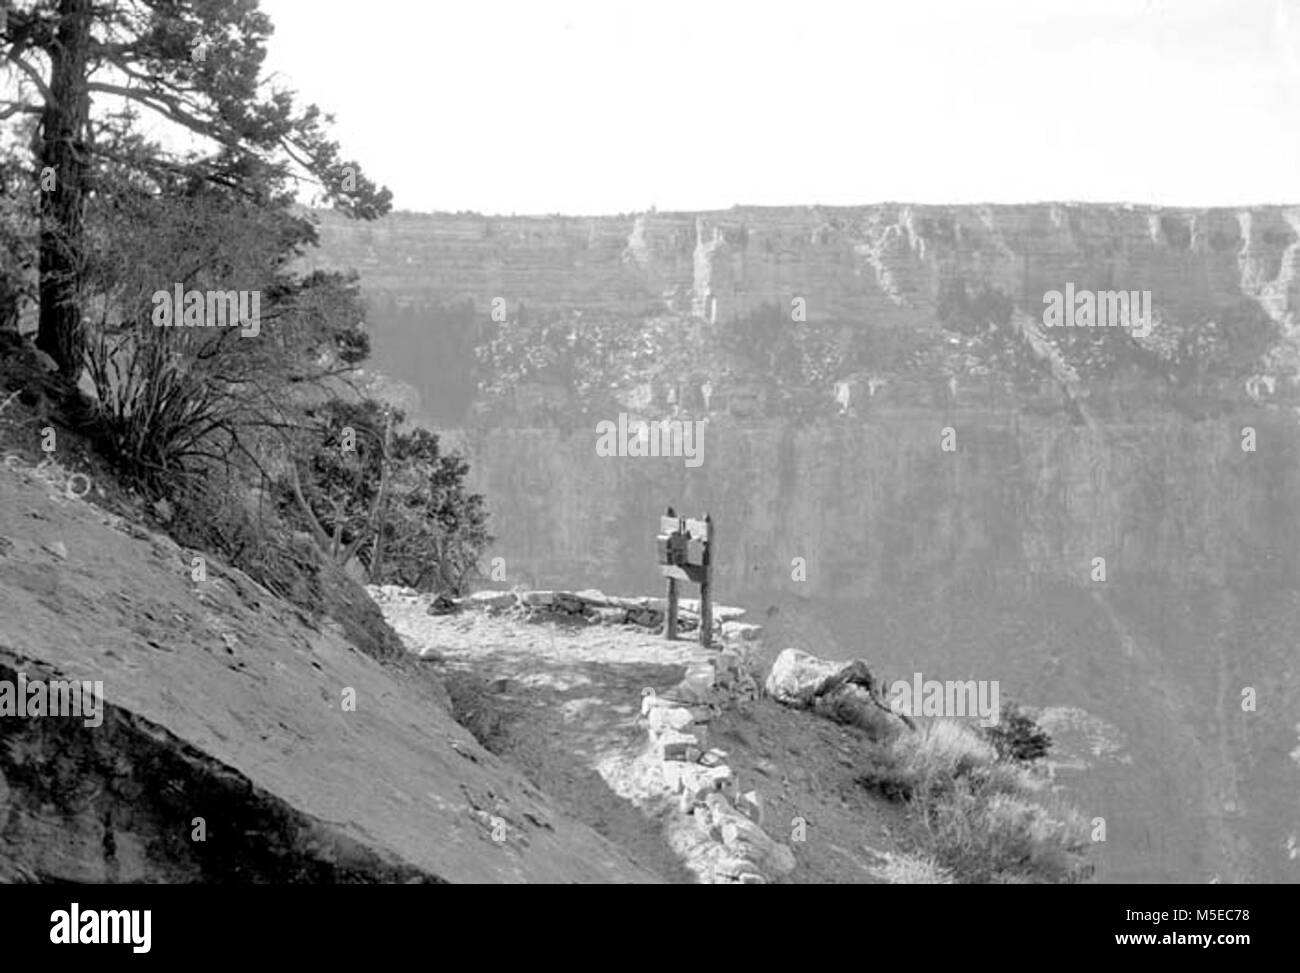 Grand Canyon Historic Trans Canyon Phone Line c   TRANS-CANYON TELEPHONE LINE CONSTRUCTION -  OVERVIEW OF TELEPHONE - Stock Image